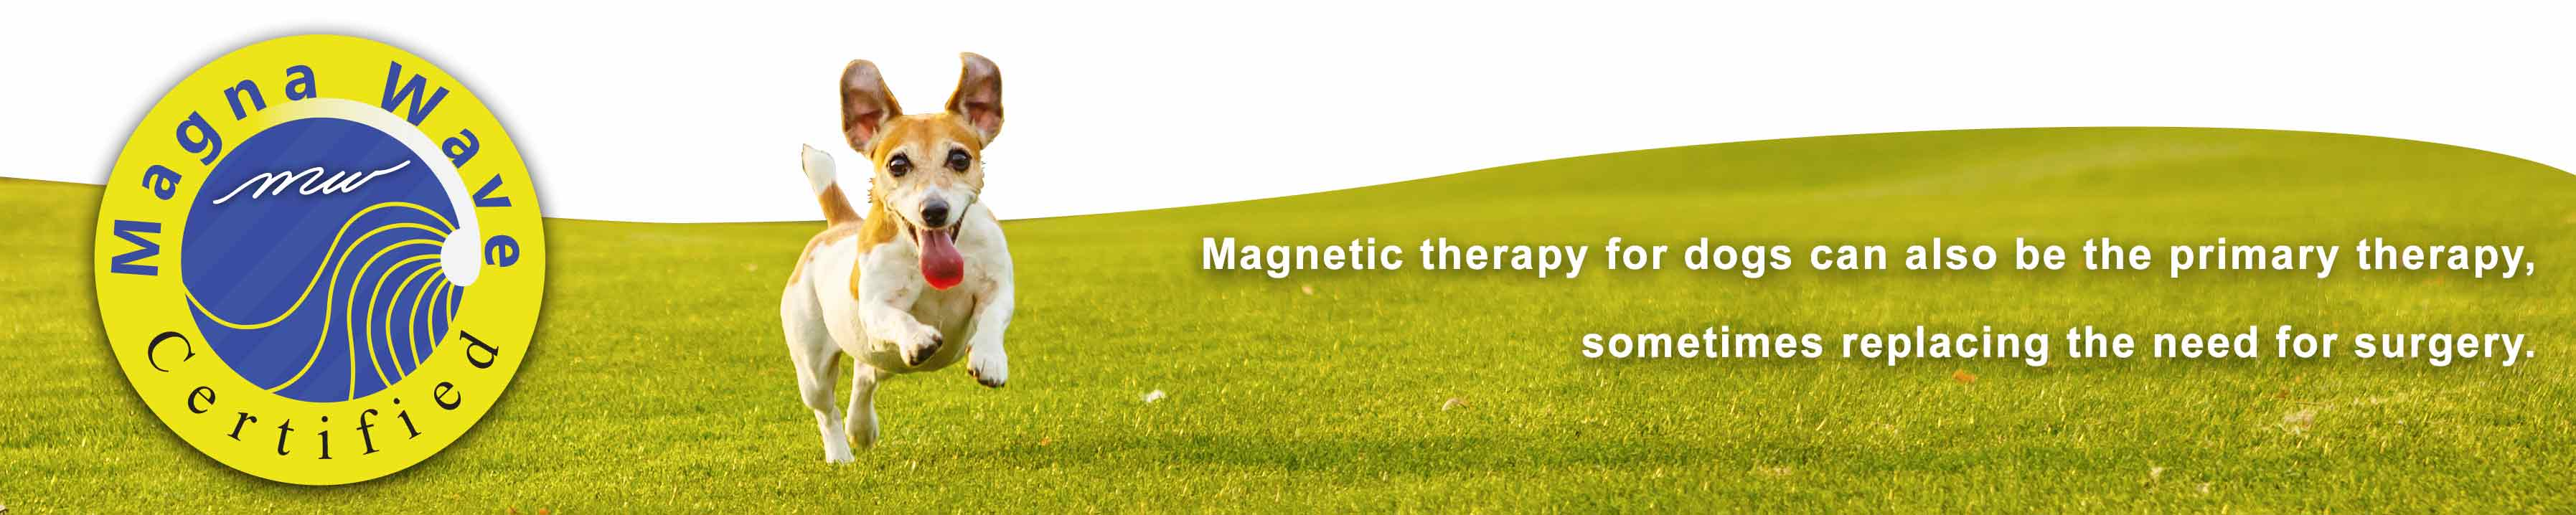 Magna Wave - Magnetic Therapy for Dogs Replacing Surgery